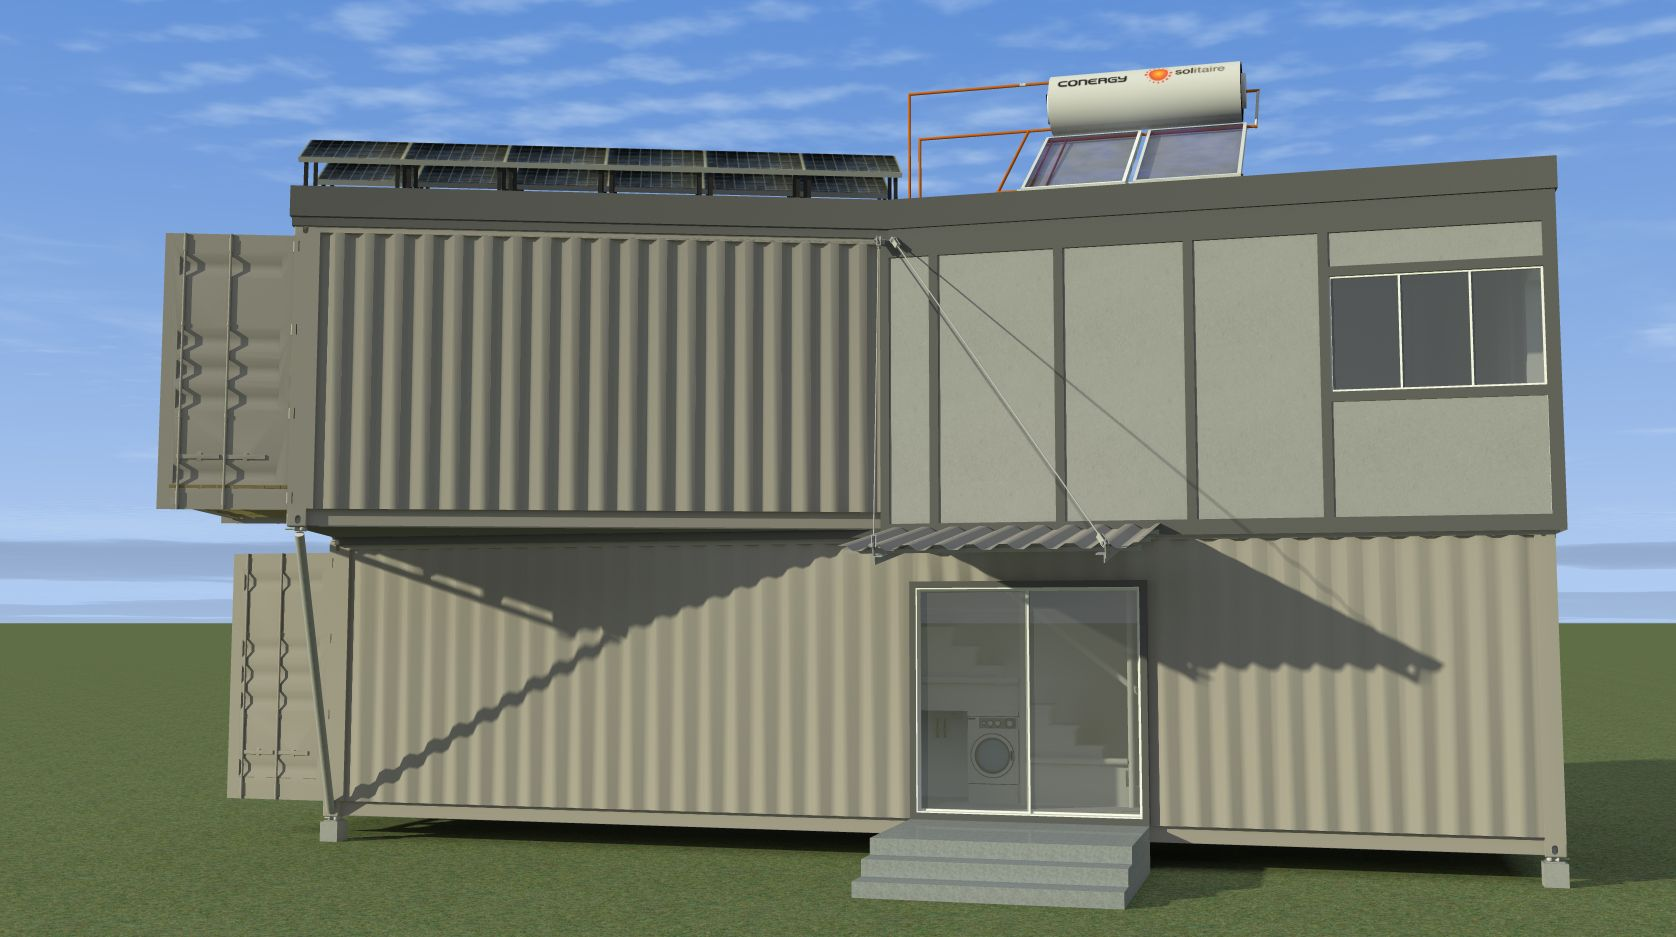 EcoCargo Container House Plans For Sale | Zigloo Custom ... on custom frame homes, custom prefab homes, semi-trailers as homes, cargo homes, custom design homes, custom log home, custom house plans, custom cabins, custom motor homes, custom portable homes, isbu homes, custom trailer homes, custom steel homes, custom glass homes, custom dome homes, custom steel buildings, most affordable modular homes, custom box homes, tornado resistant homes, custom wood homes,